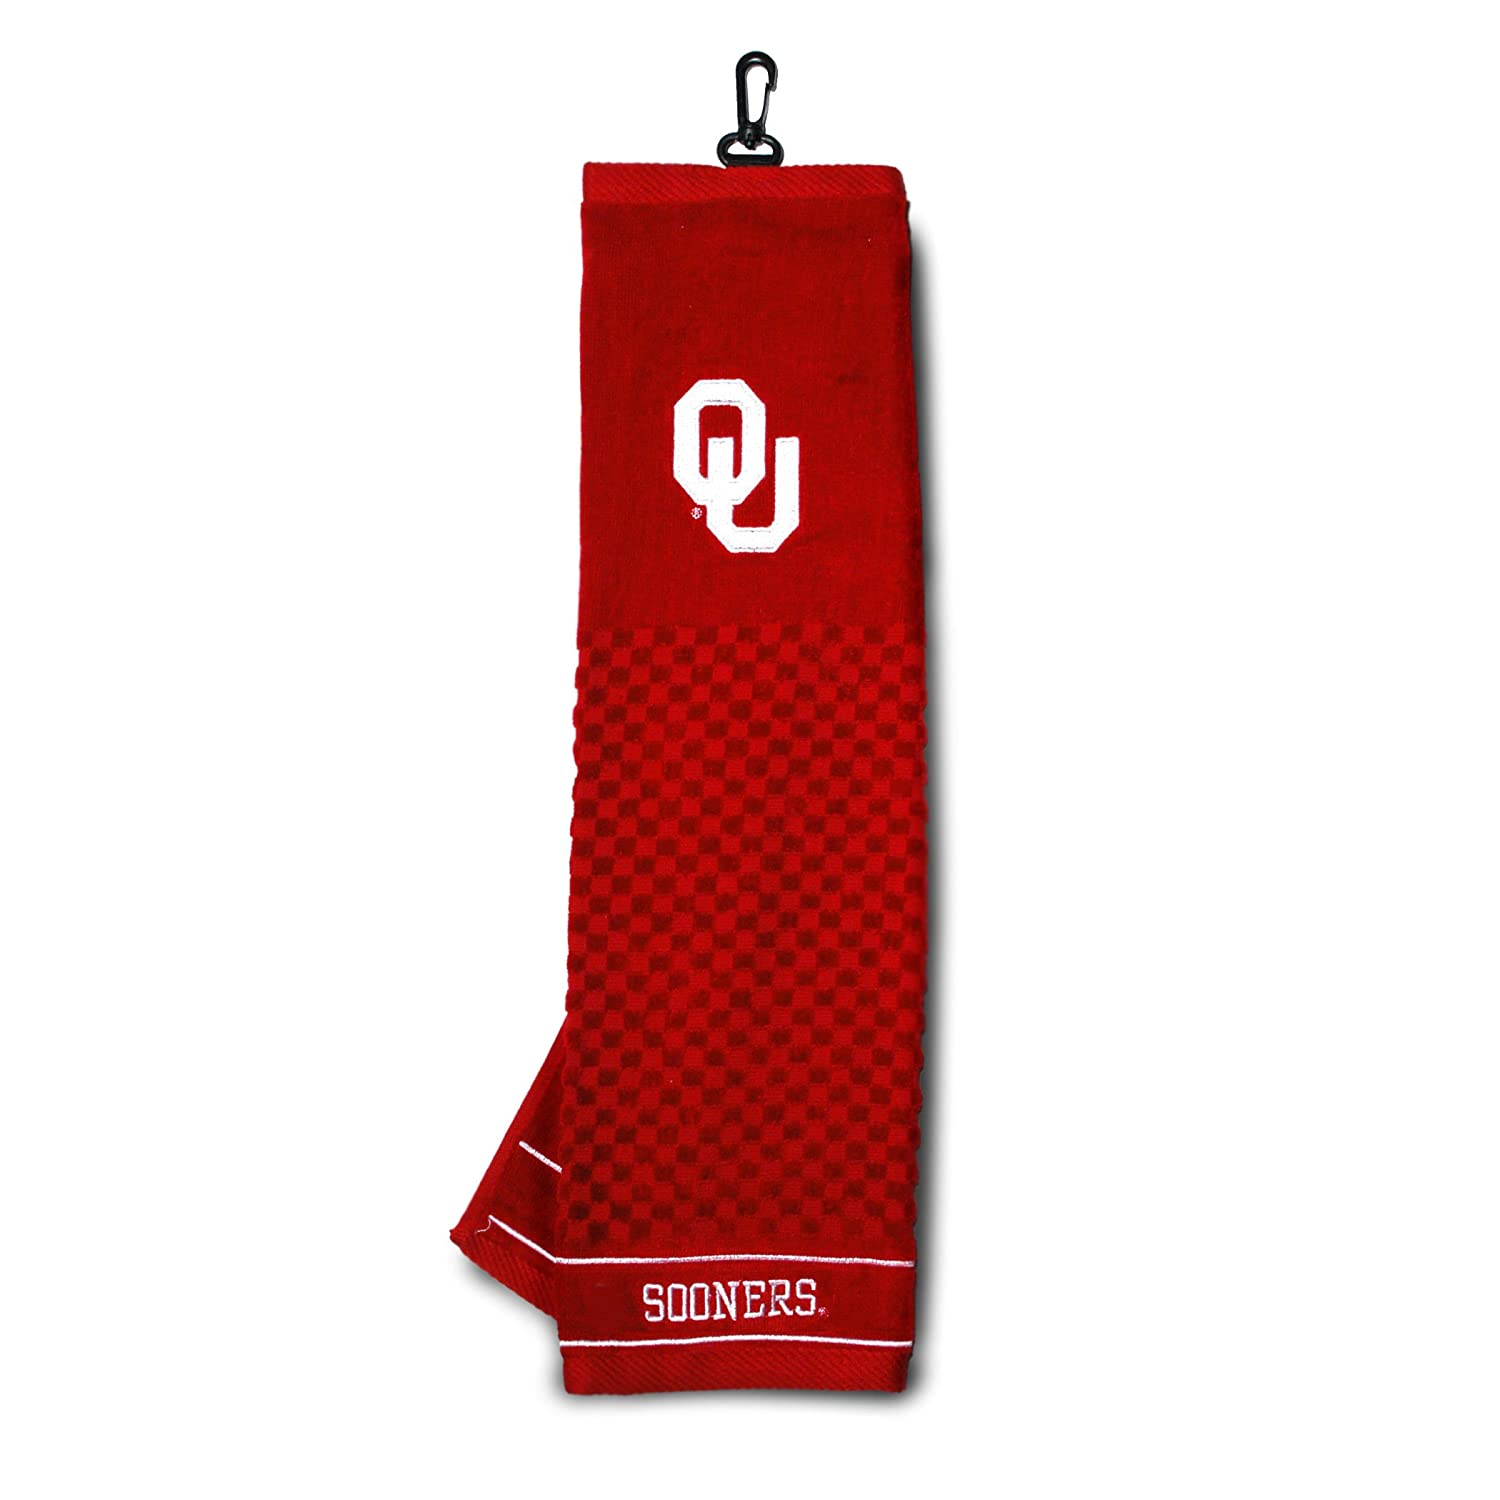 Team Golf NCAA Oklahoma Sooners Embroidered Golf Towel Checkered Scrubber Design Embroidered Logo